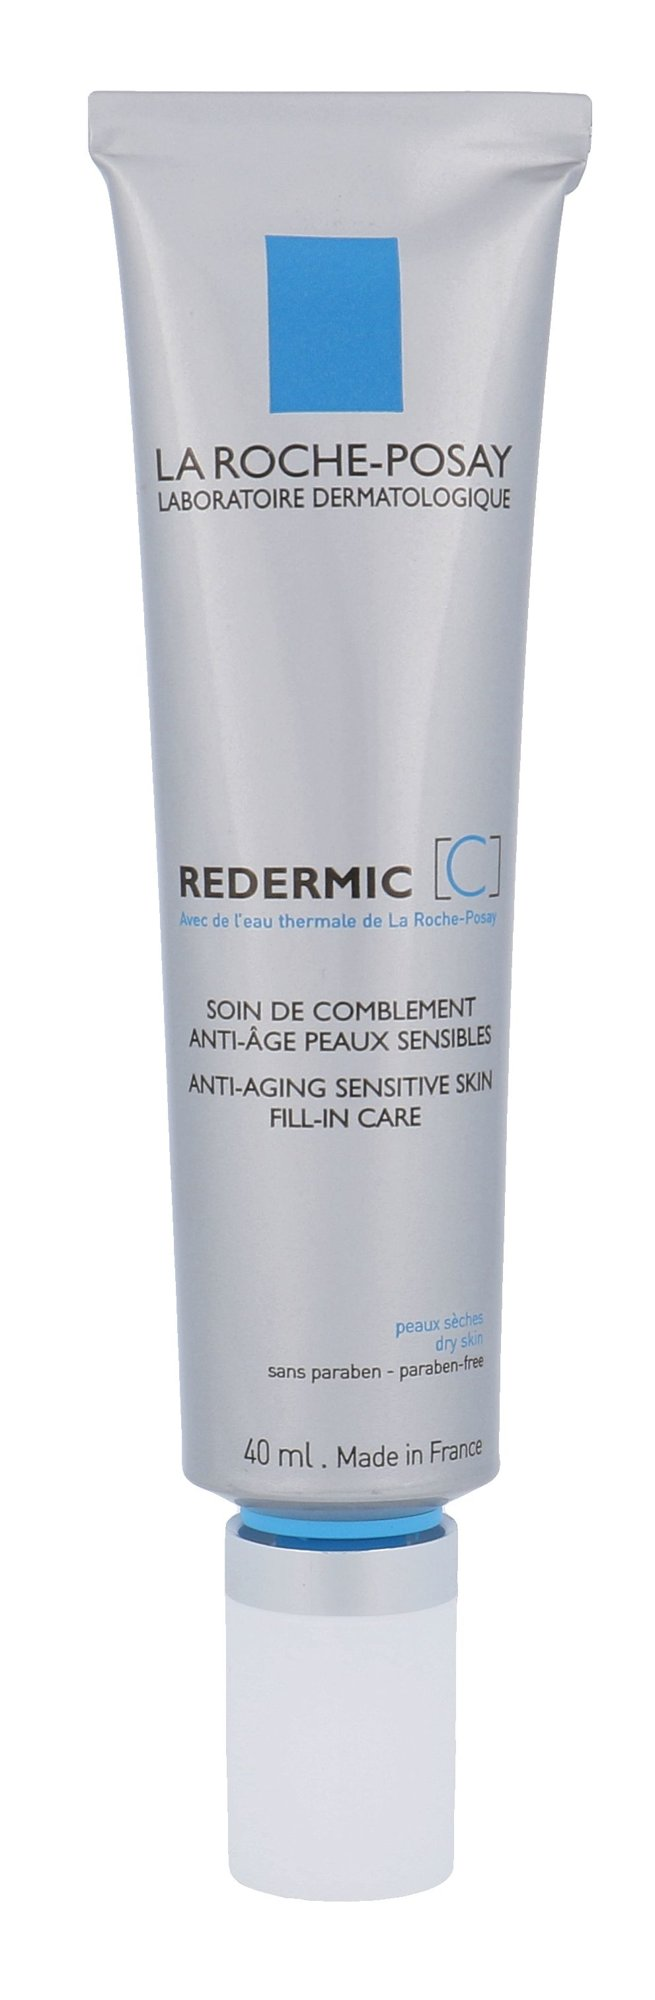 La Roche-Posay Redermic C Anti-Ageing Fill-In Care Dry Skin Cosmetic 40ml